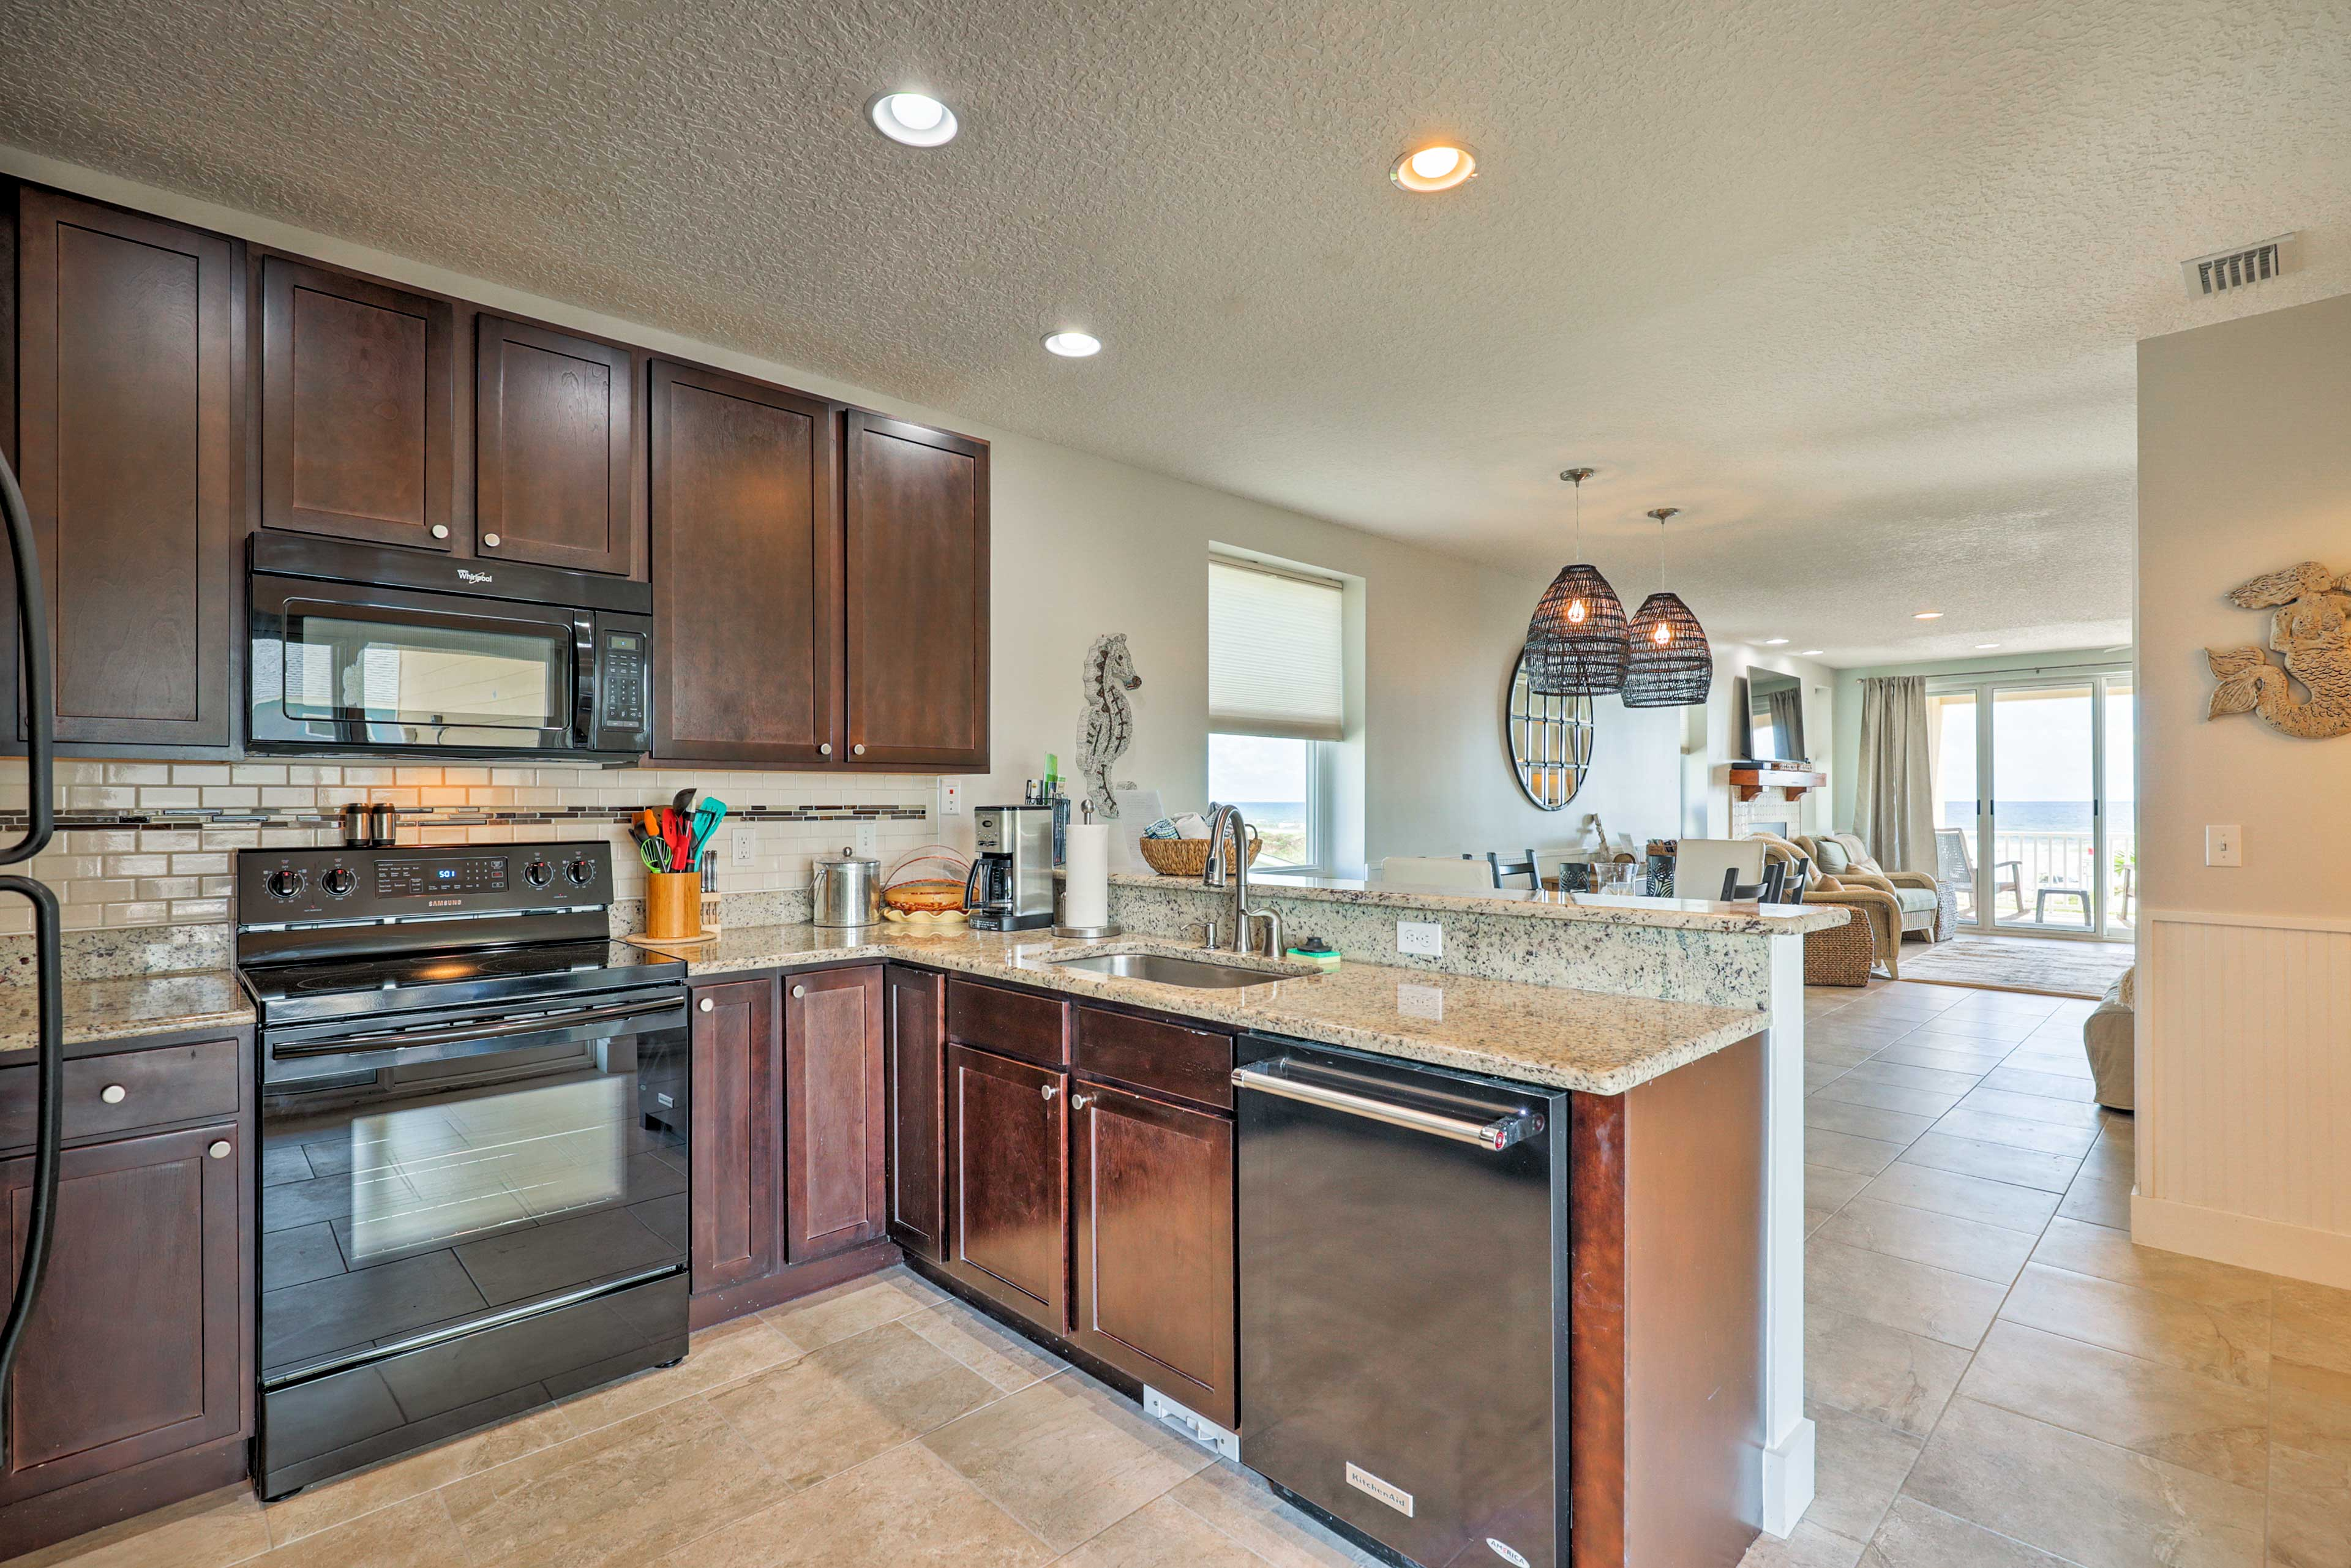 Cook your favorite dinner in this fully-equipped kitchen on the second floor.